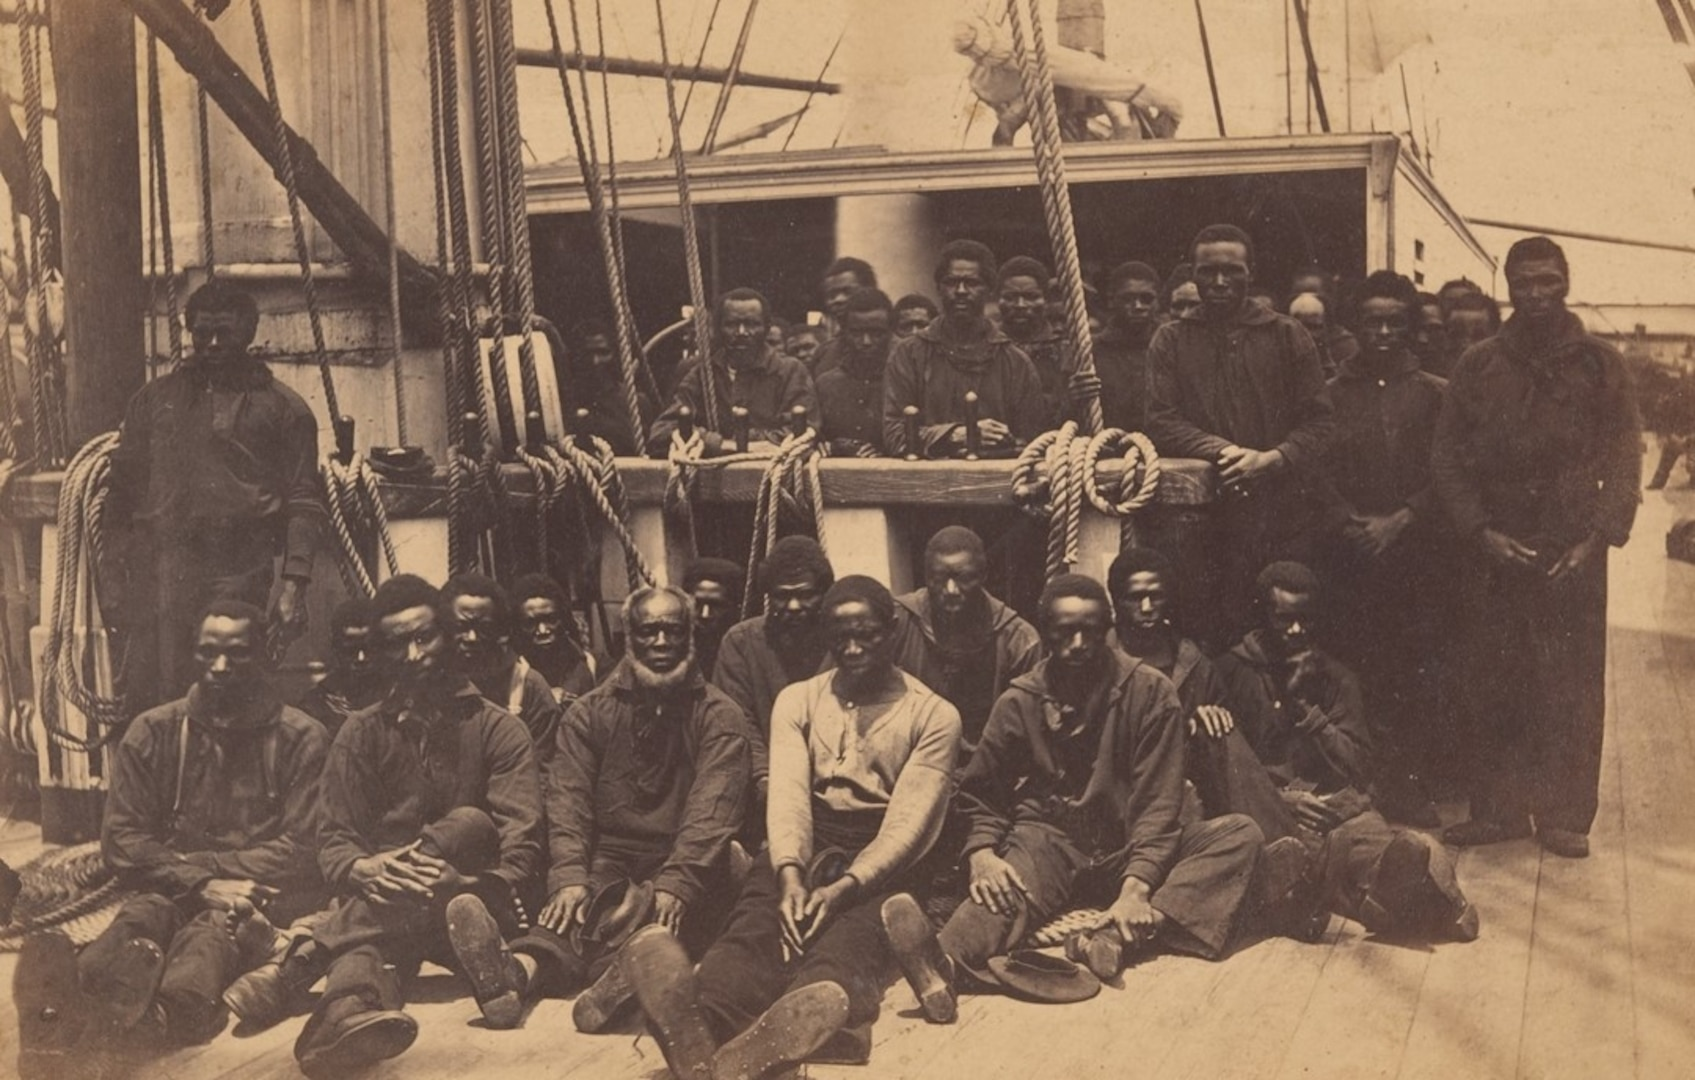 Contraband sailors on the Union Navy receiving ship USS Vermont, moored at Port Royal, South Carolina, during the Civil War. (metmuseum.org)